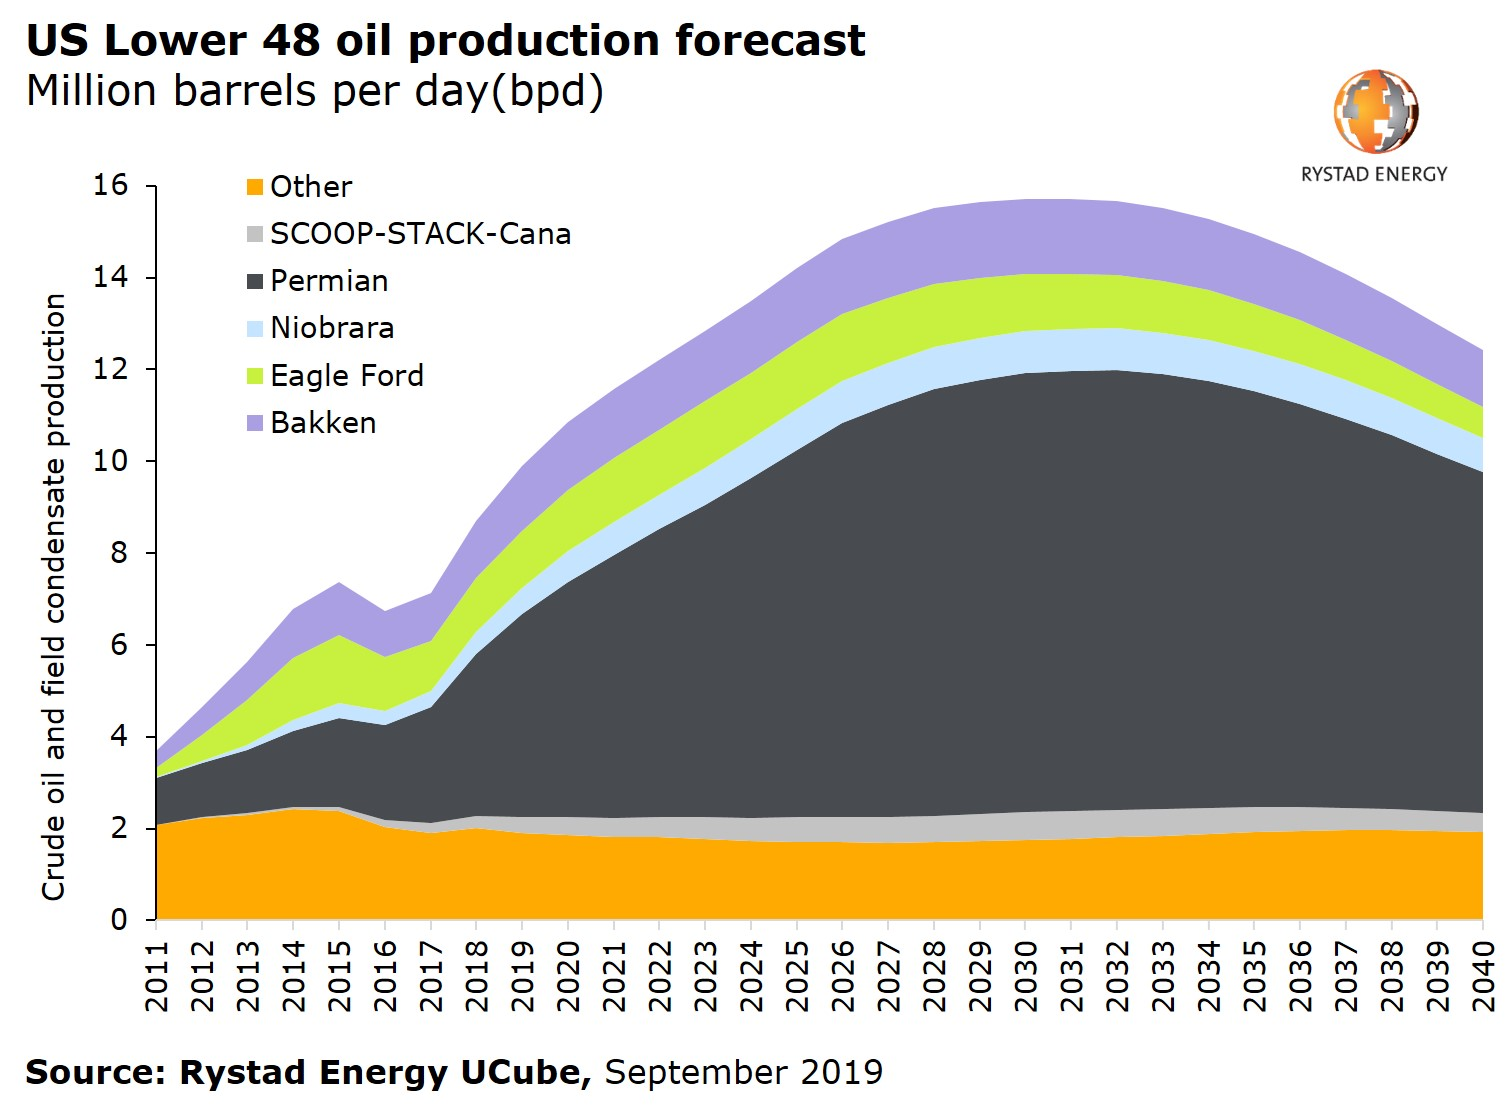 20190912_PR Chart US Lower 48 oil production forecast mbpd Permian SCOOP STACK Niobrara Eagle Ford Bakken 2011 2040-v2.jpg